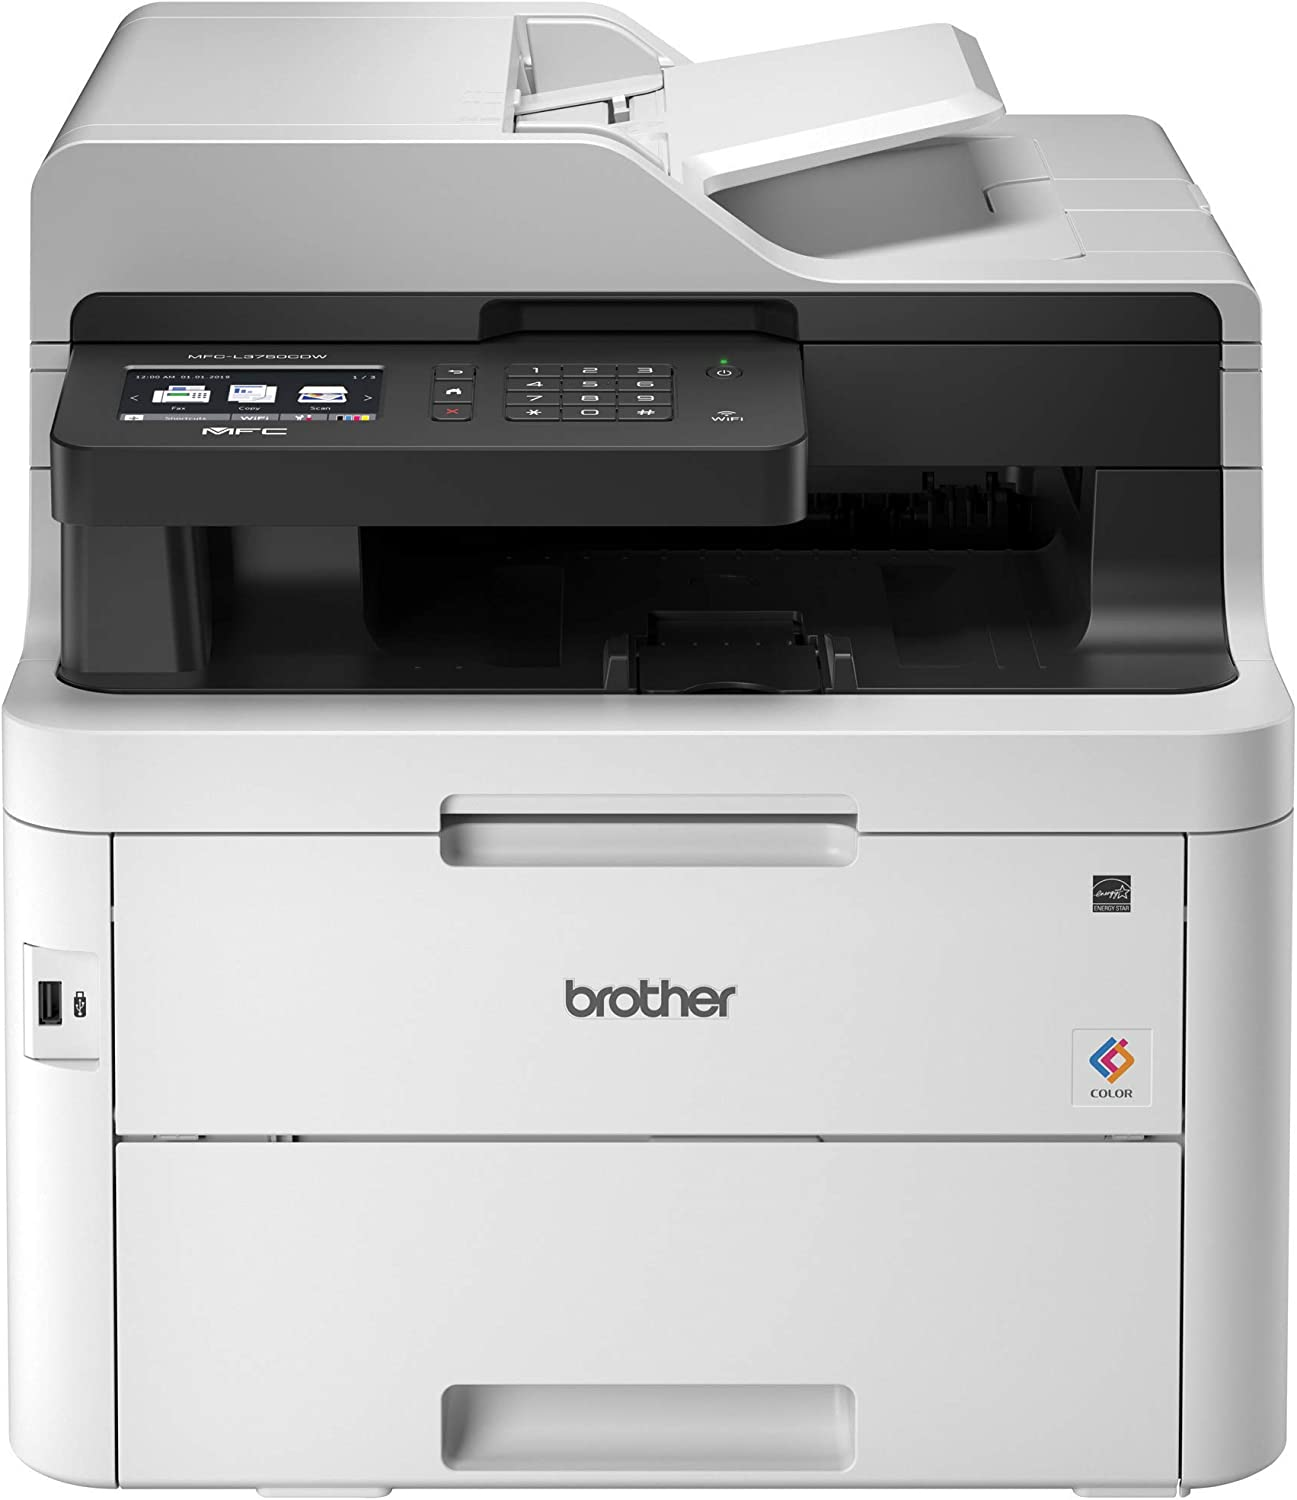 Brother MFC-L3750CDW Digital Color All-in-One Printer, Laser Printer Quality, Wireless Printing, Duplex Printing,  Dash Replenishment Ready: Electronics